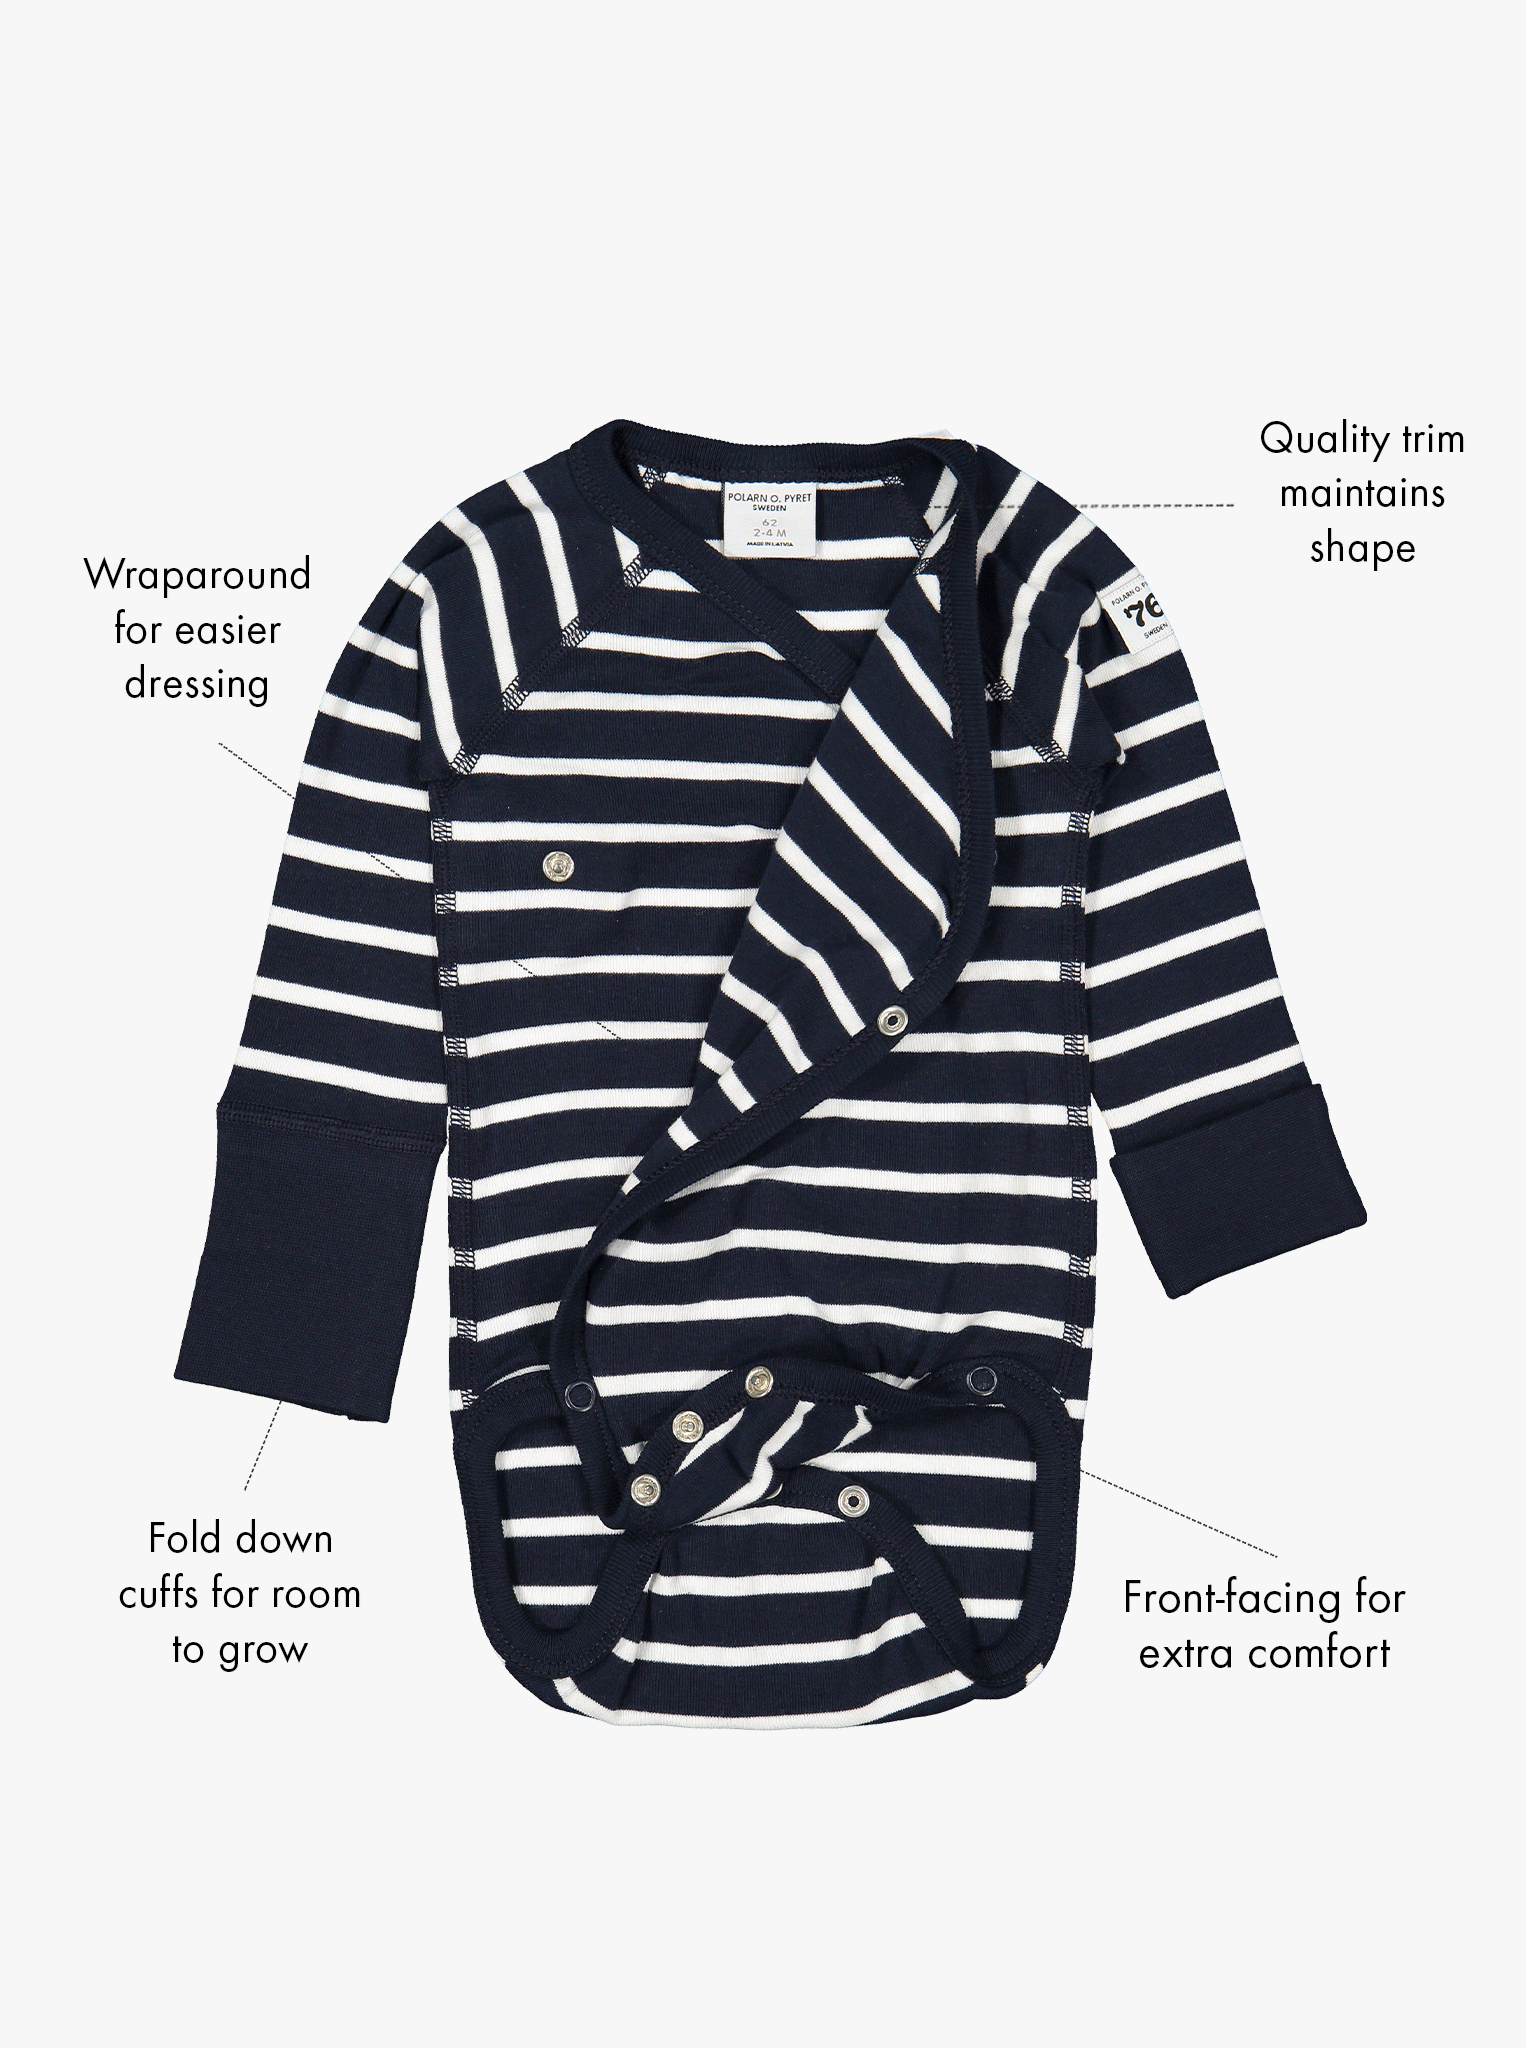 Navy blue and white stripe print babygrows in a front view, with the buttons opened and text features shown on the sides.